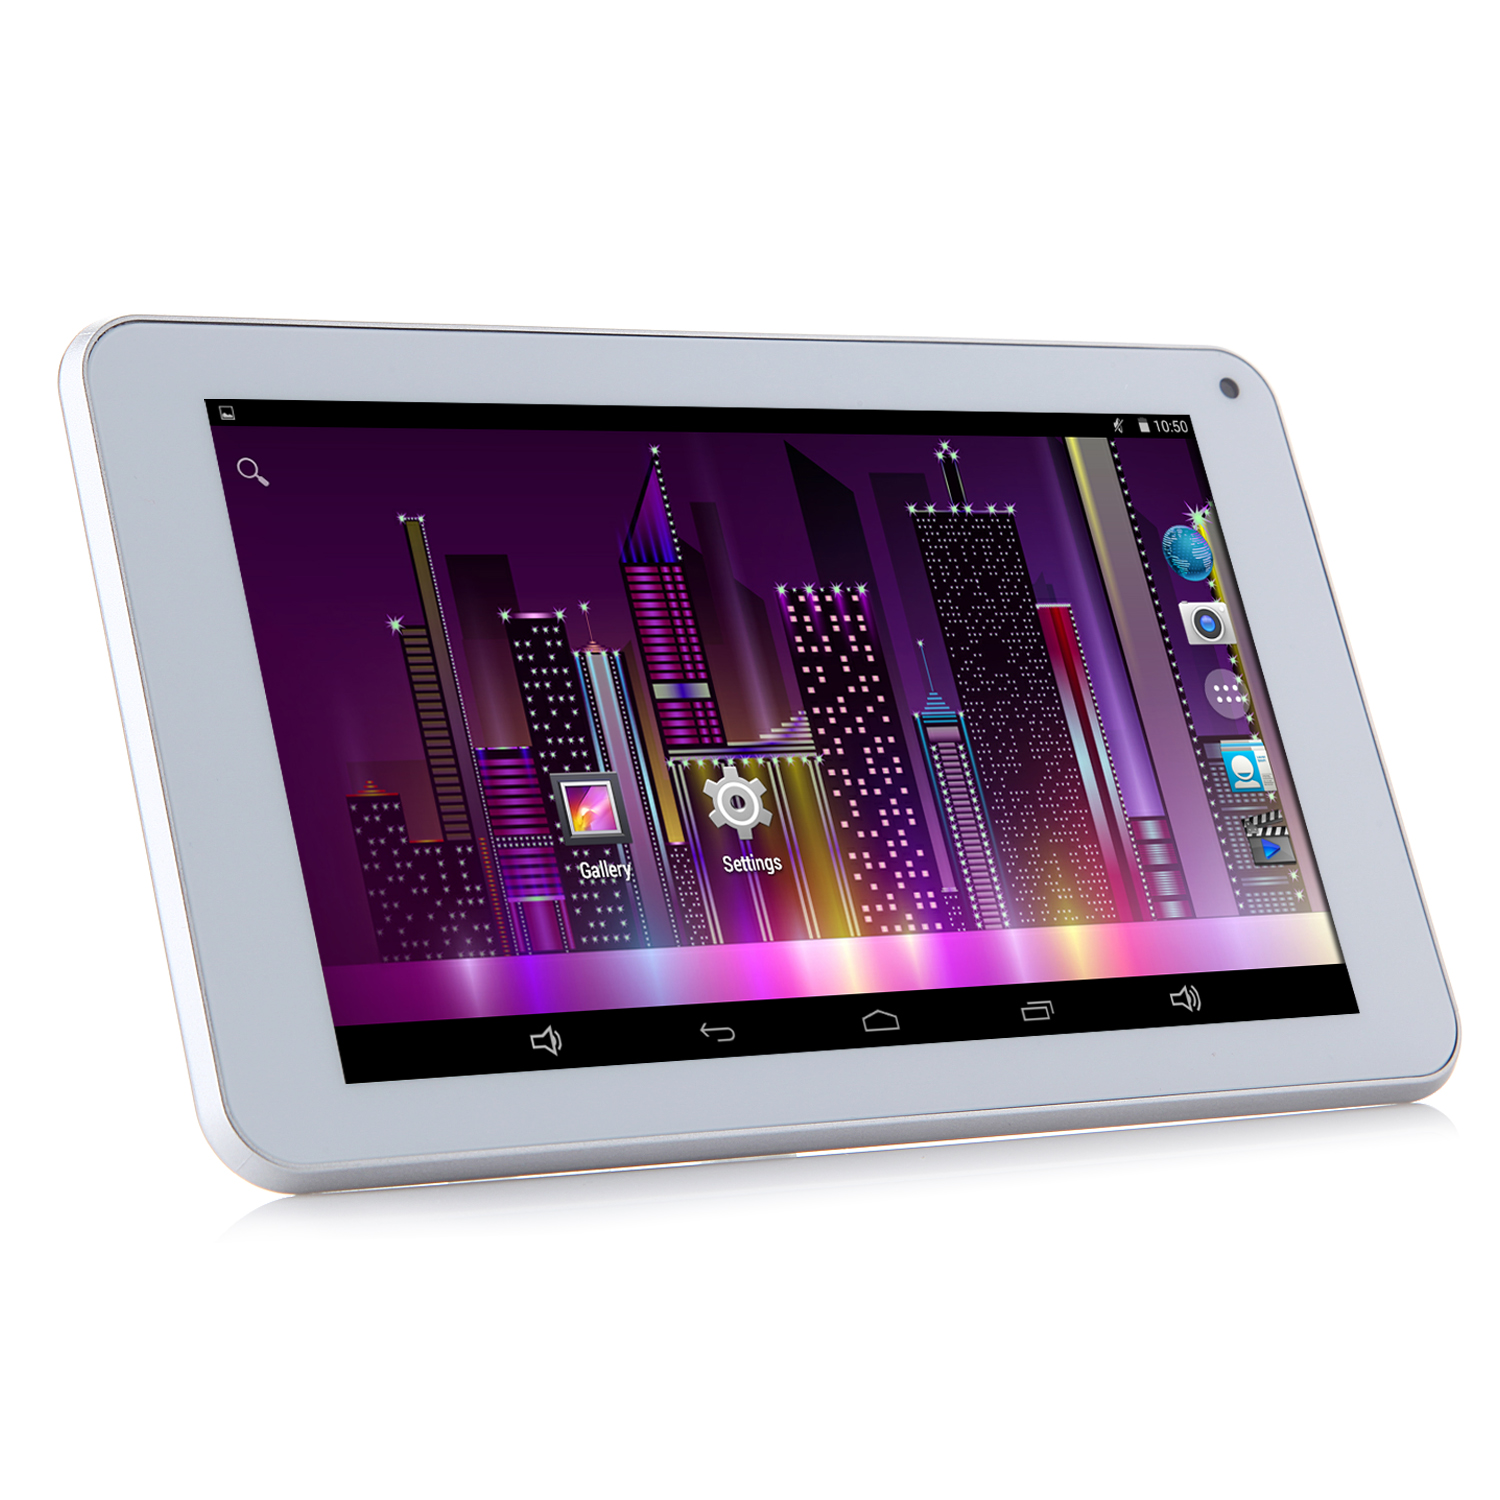 HUU H7 SMART Tablet PC RK3126 Quad Core 7.0 Inch Android 4.4 IPS Screen 8GB White